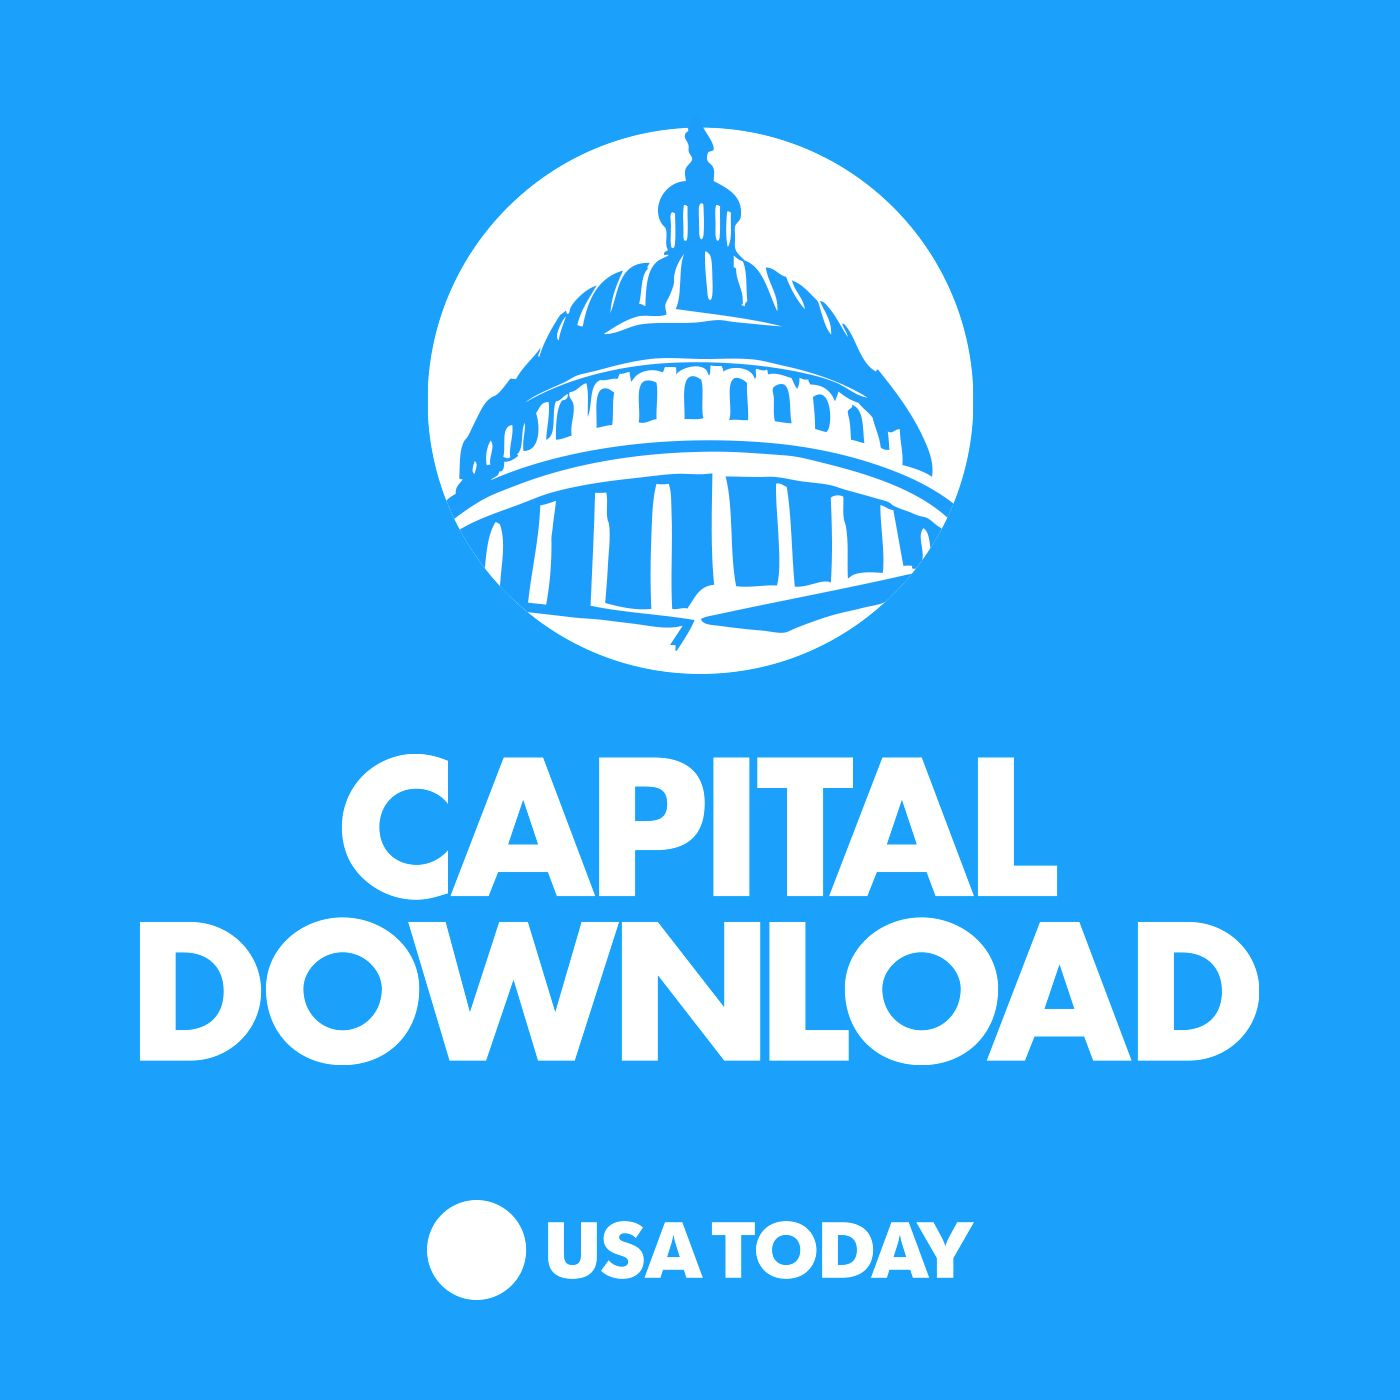 Capital Download